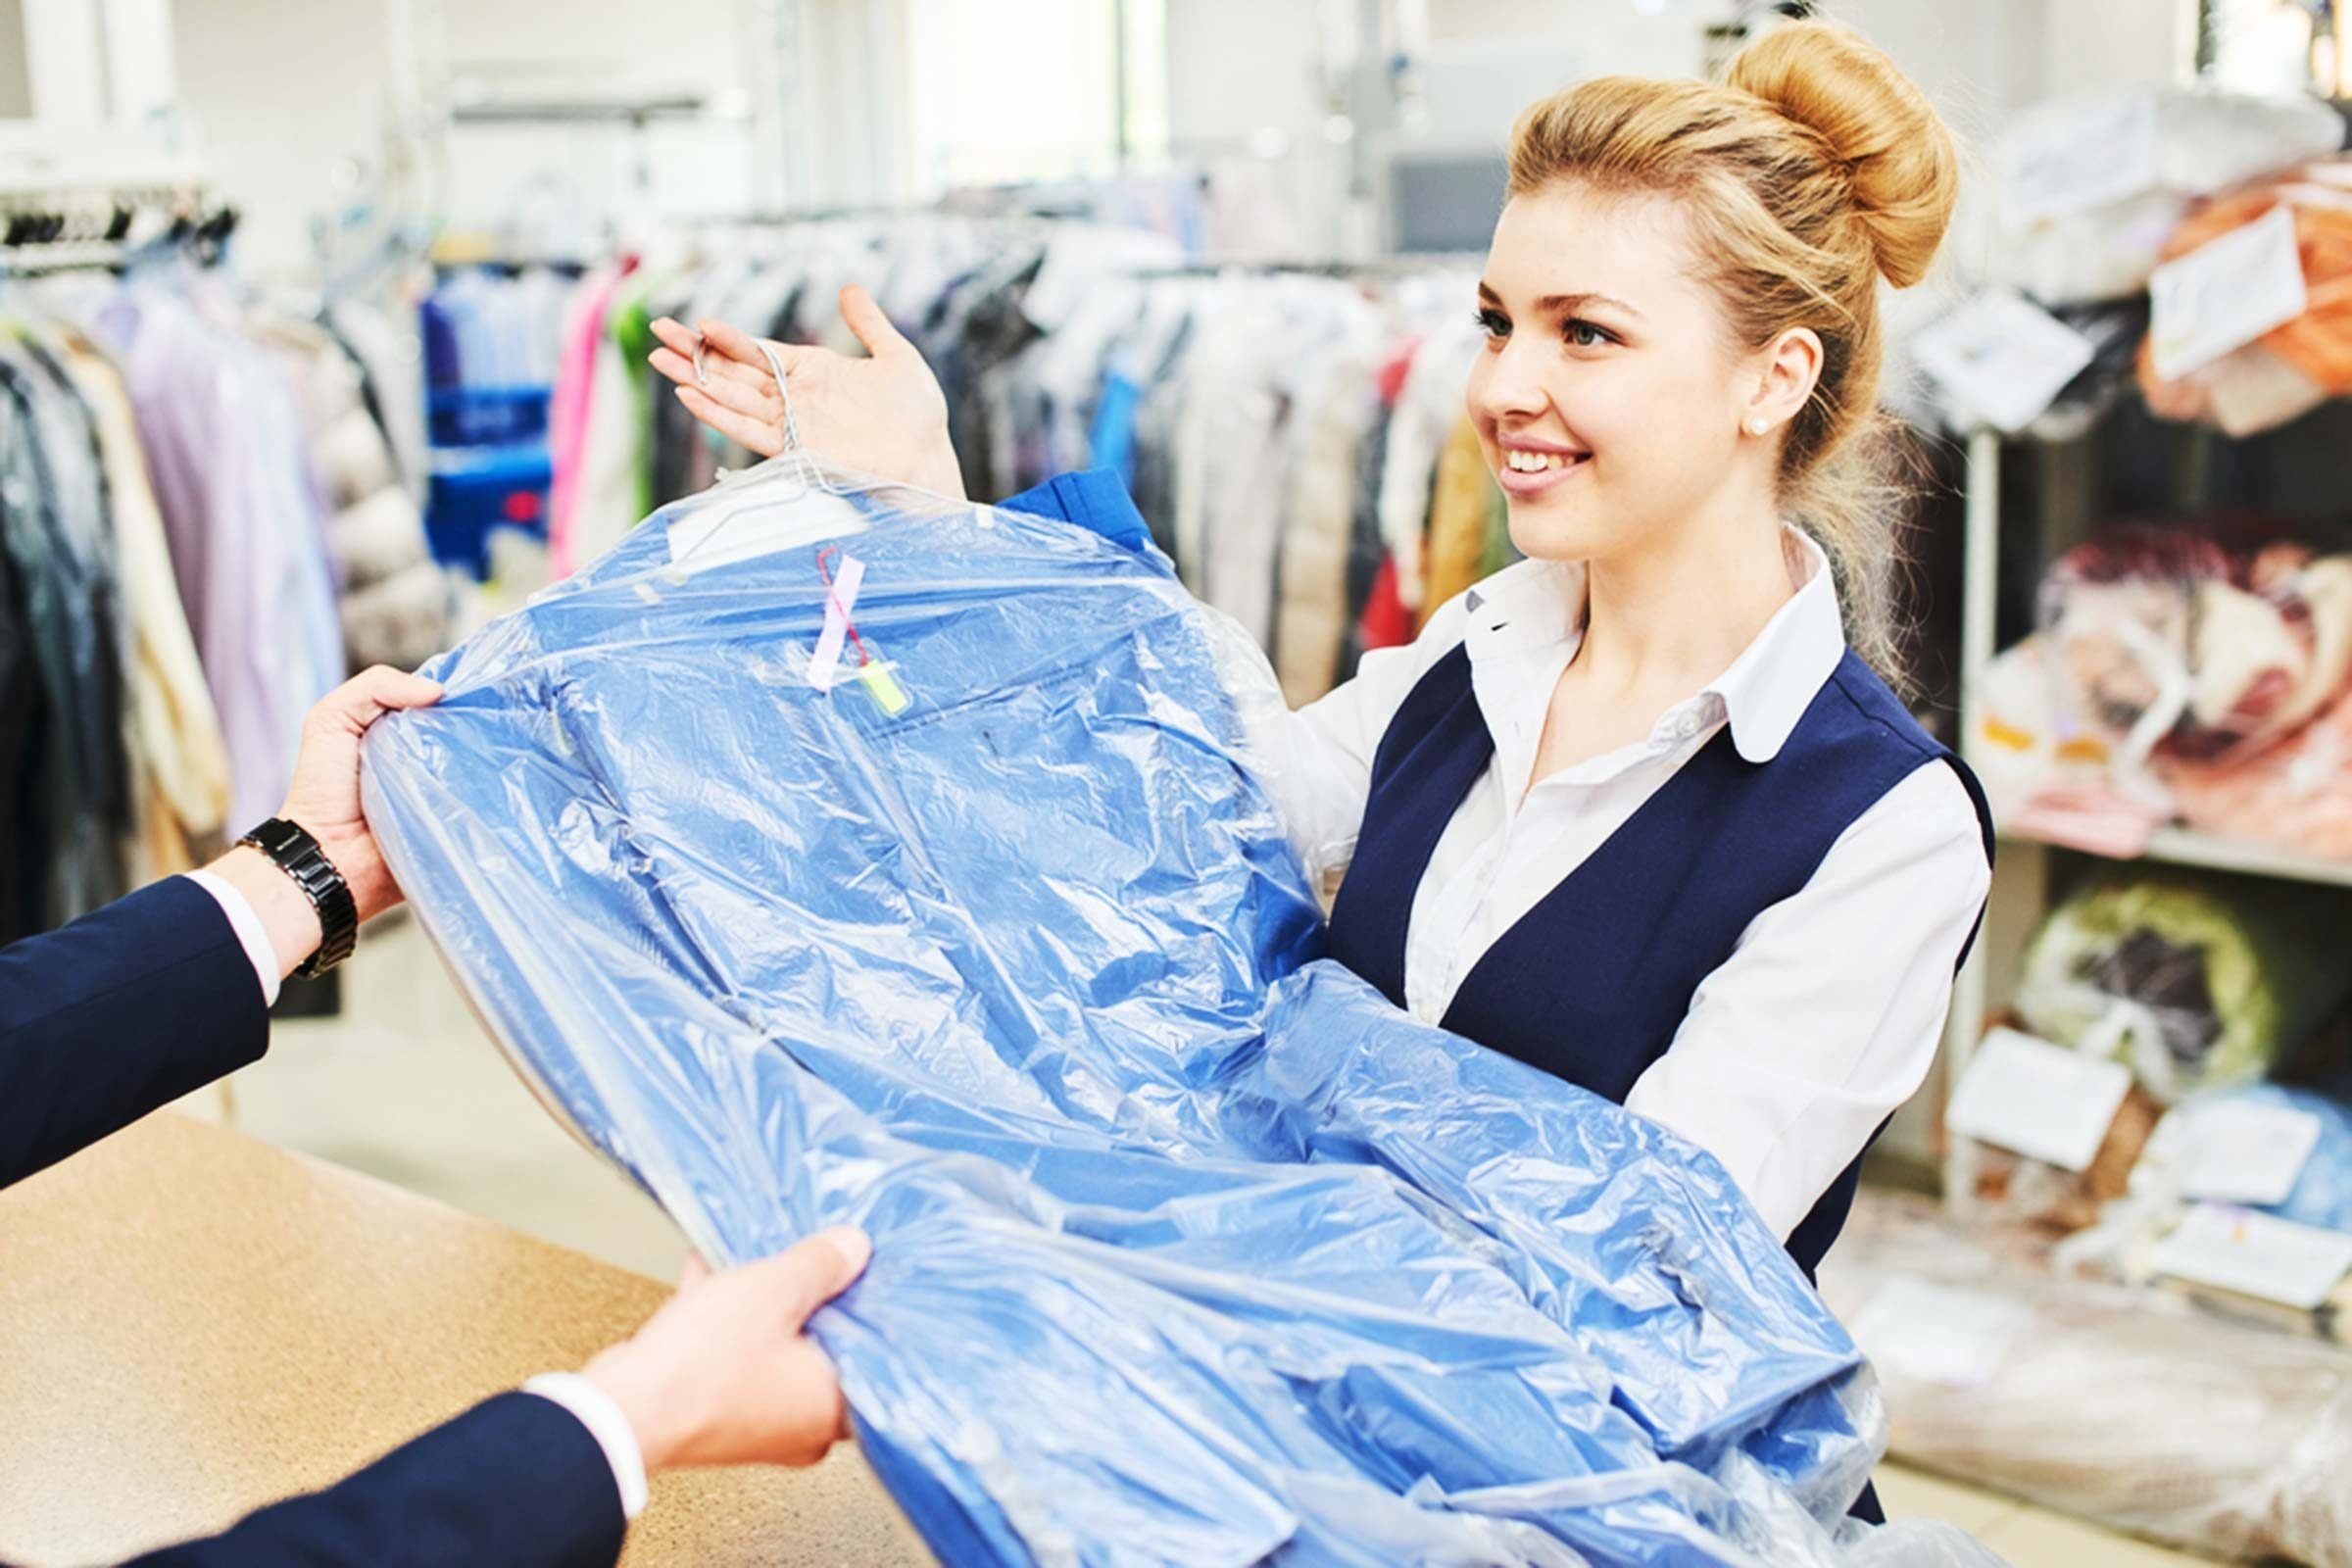 Do You Know About the Complete Process of Commercial Dry Cleaning?